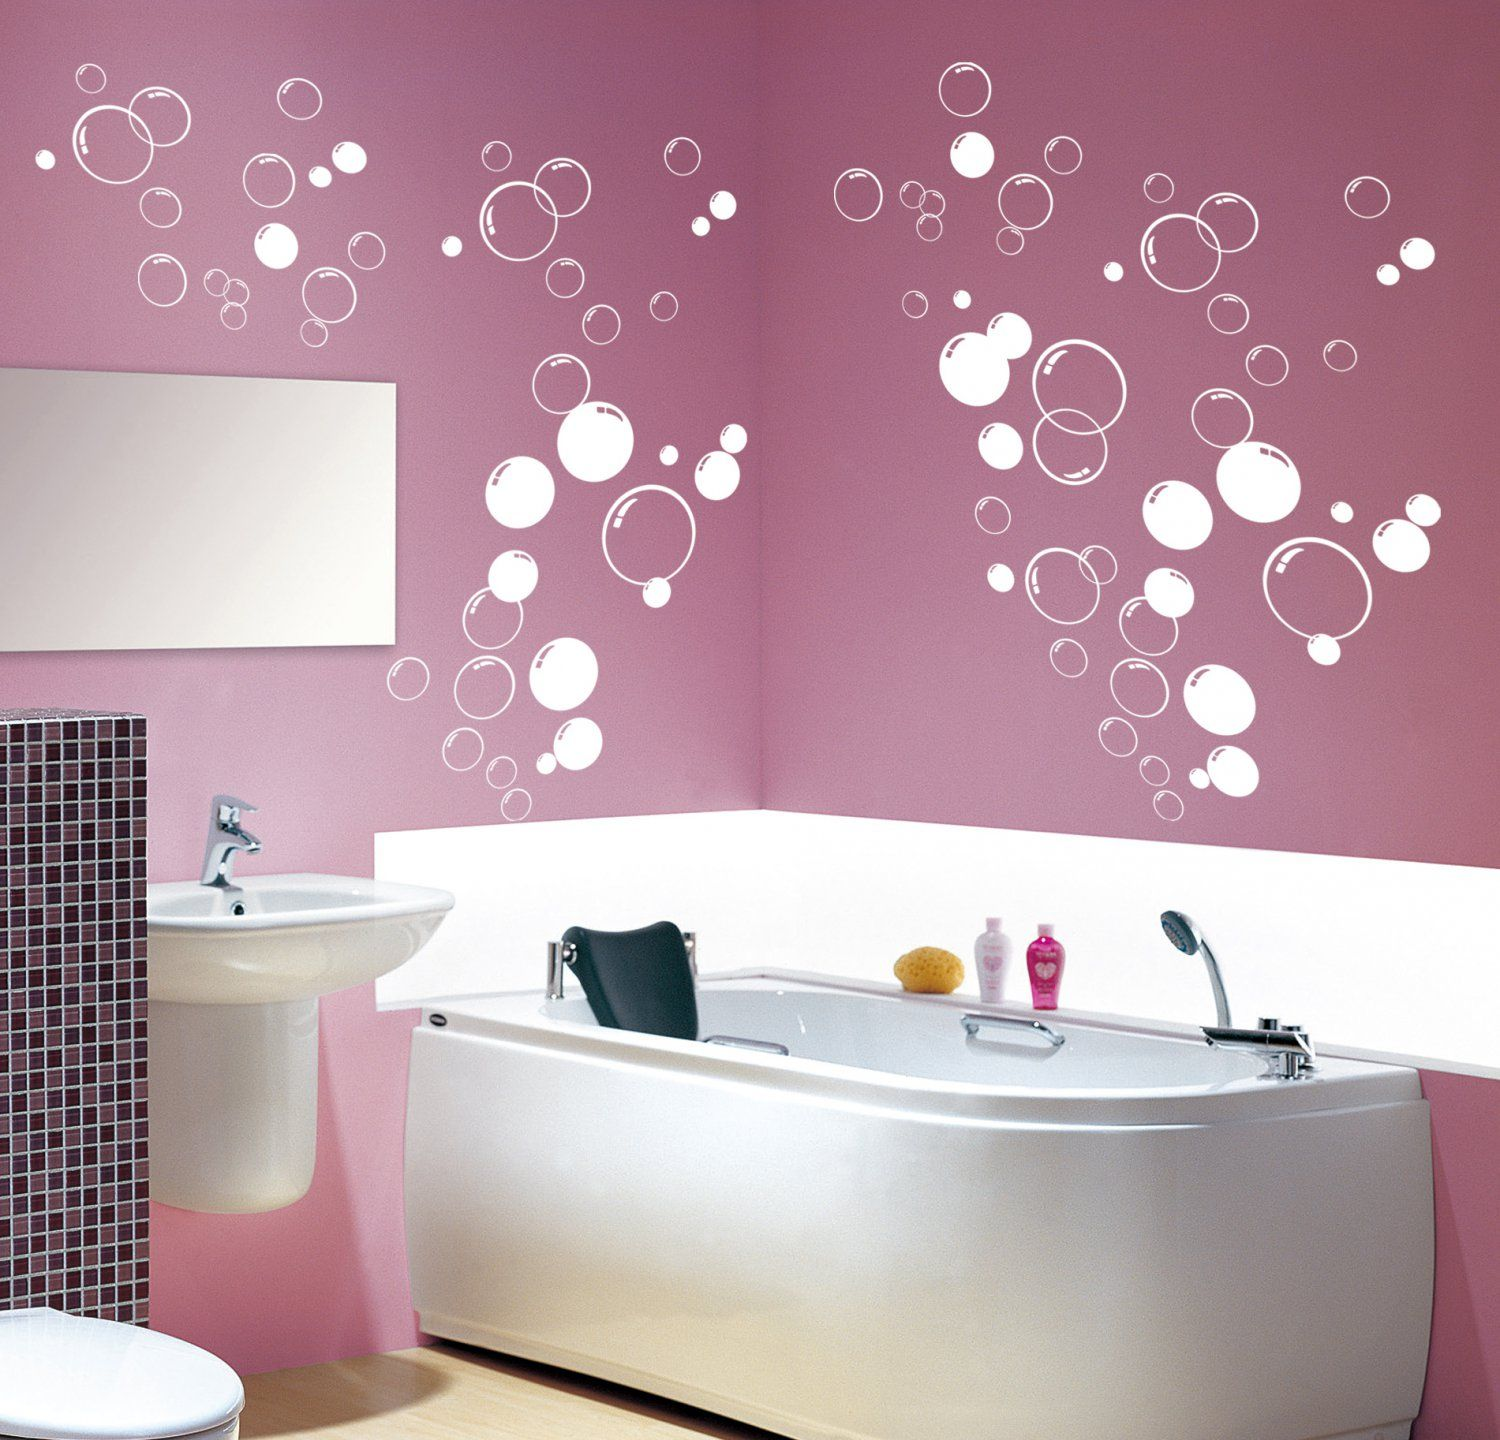 90x multi size bubbles bathroom shower door vinyl wall on wall stickers painting id=97500